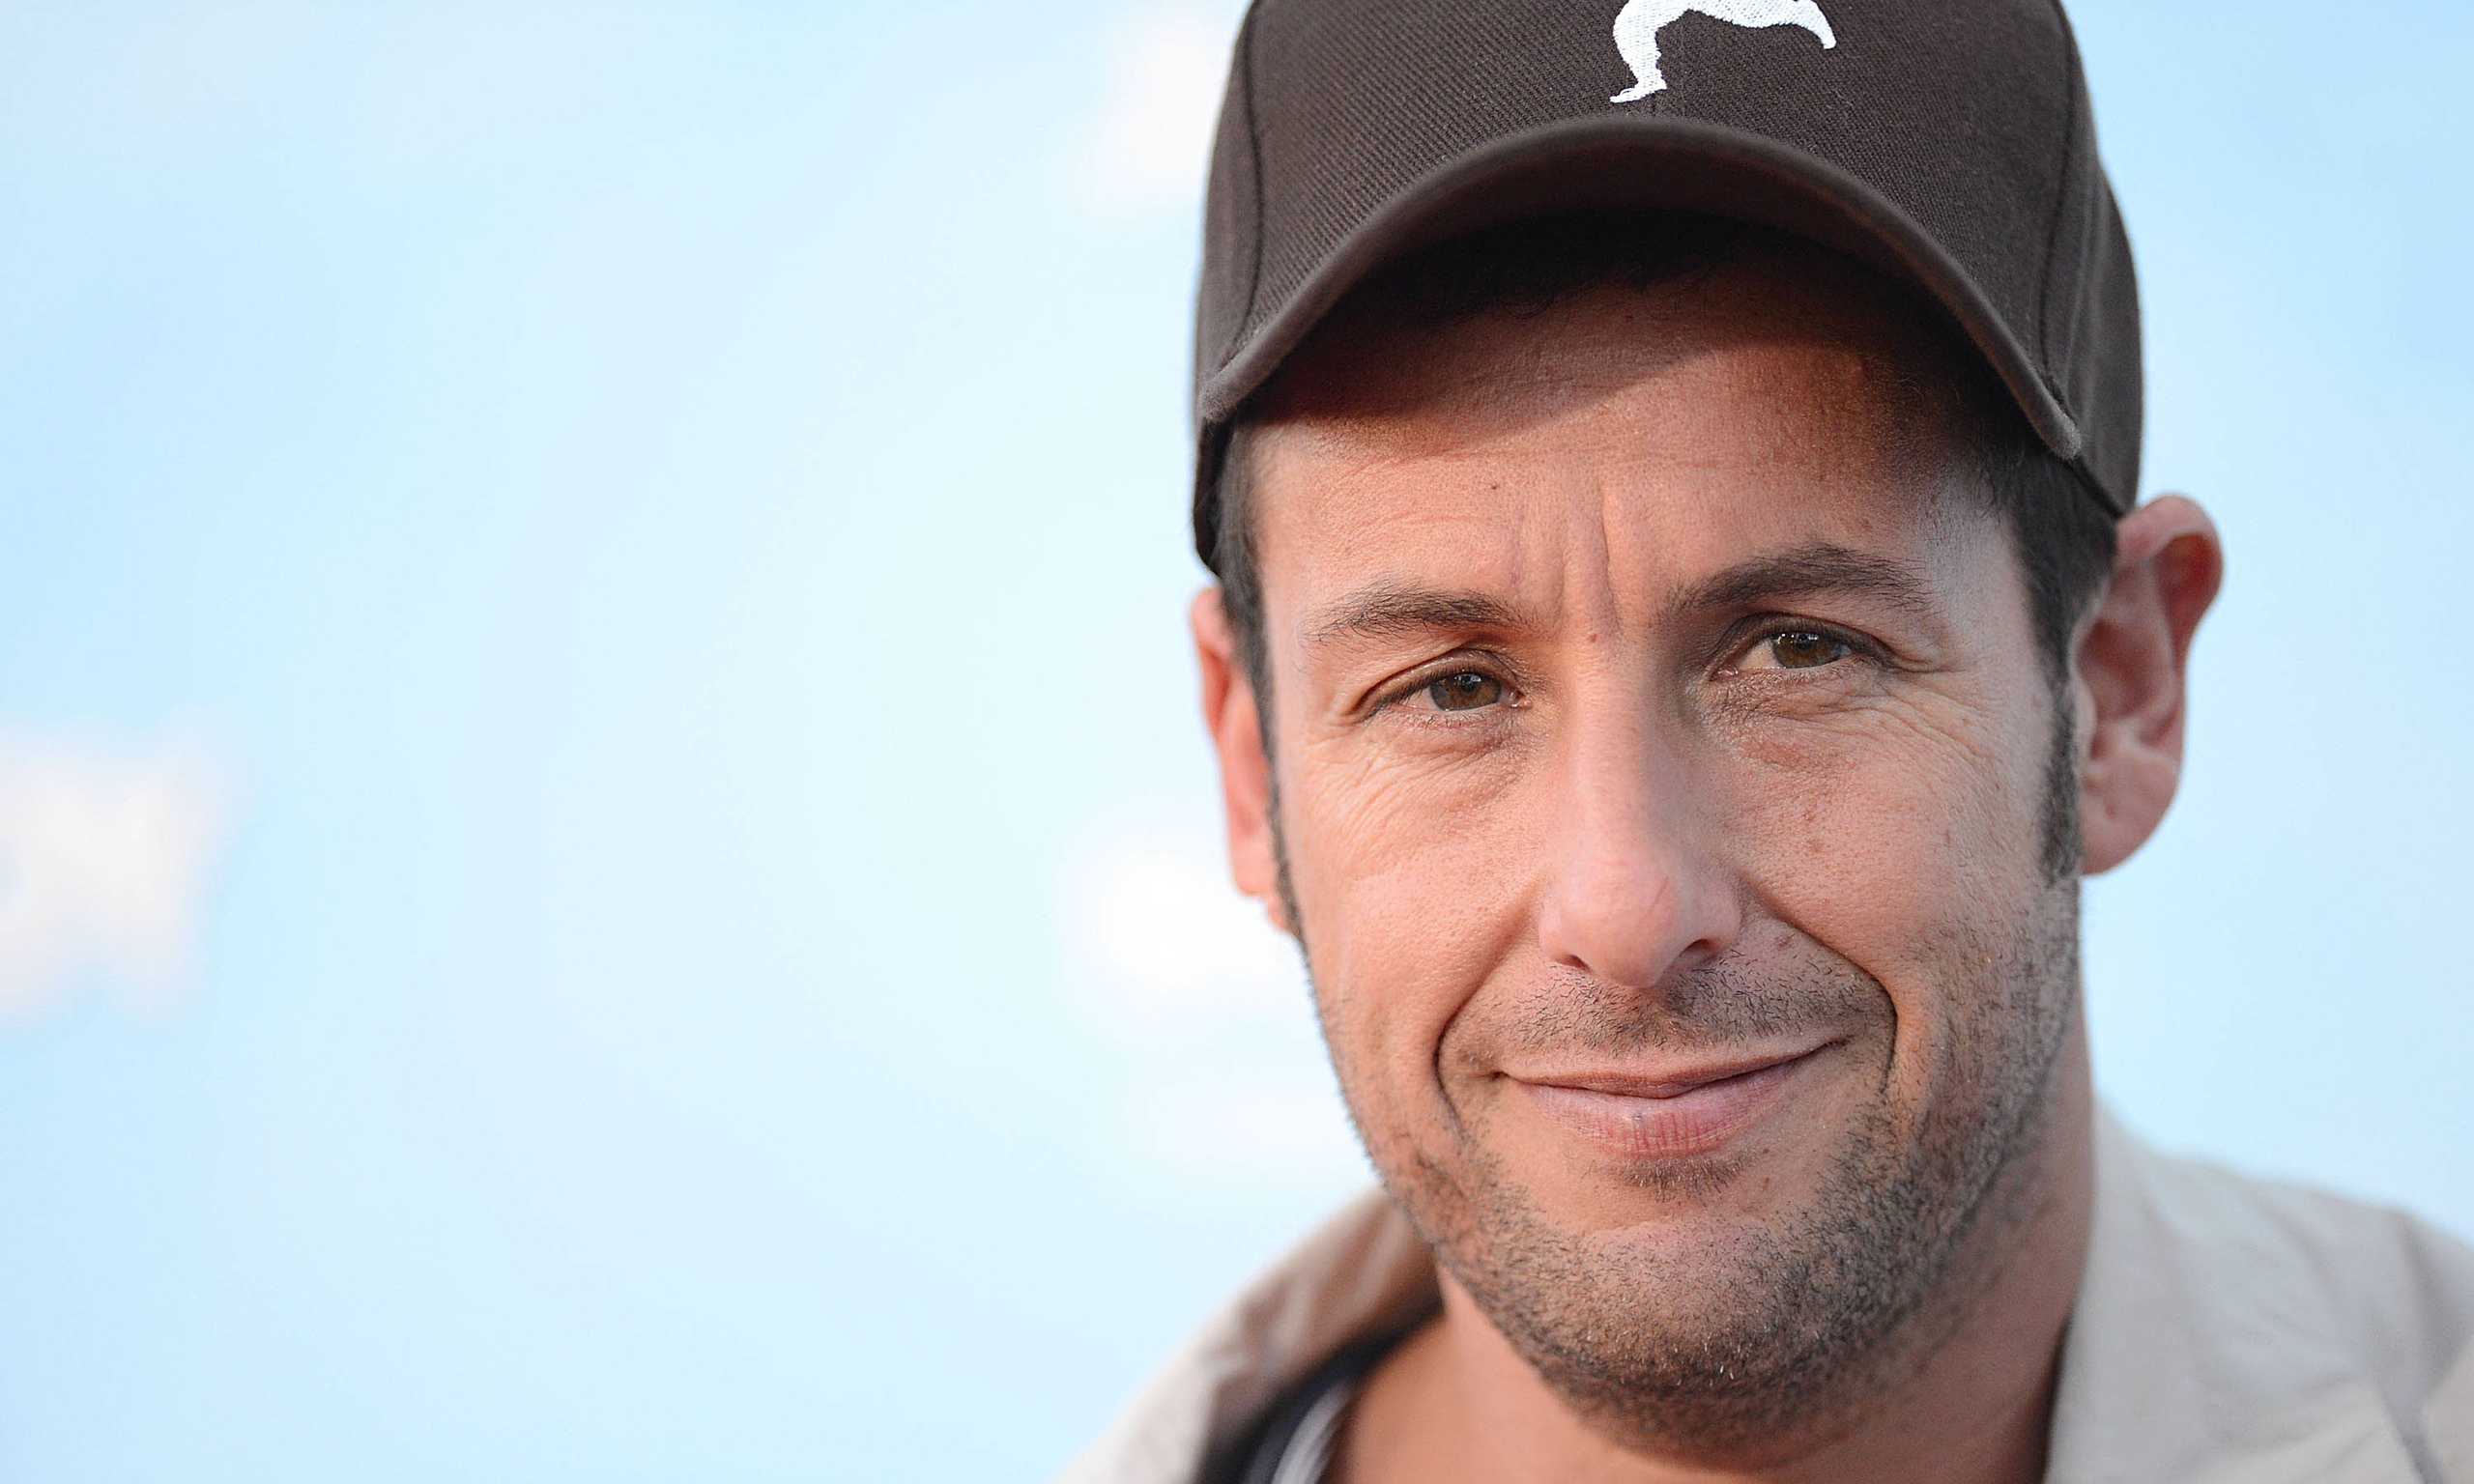 adam sandler face wallpaper background 55573